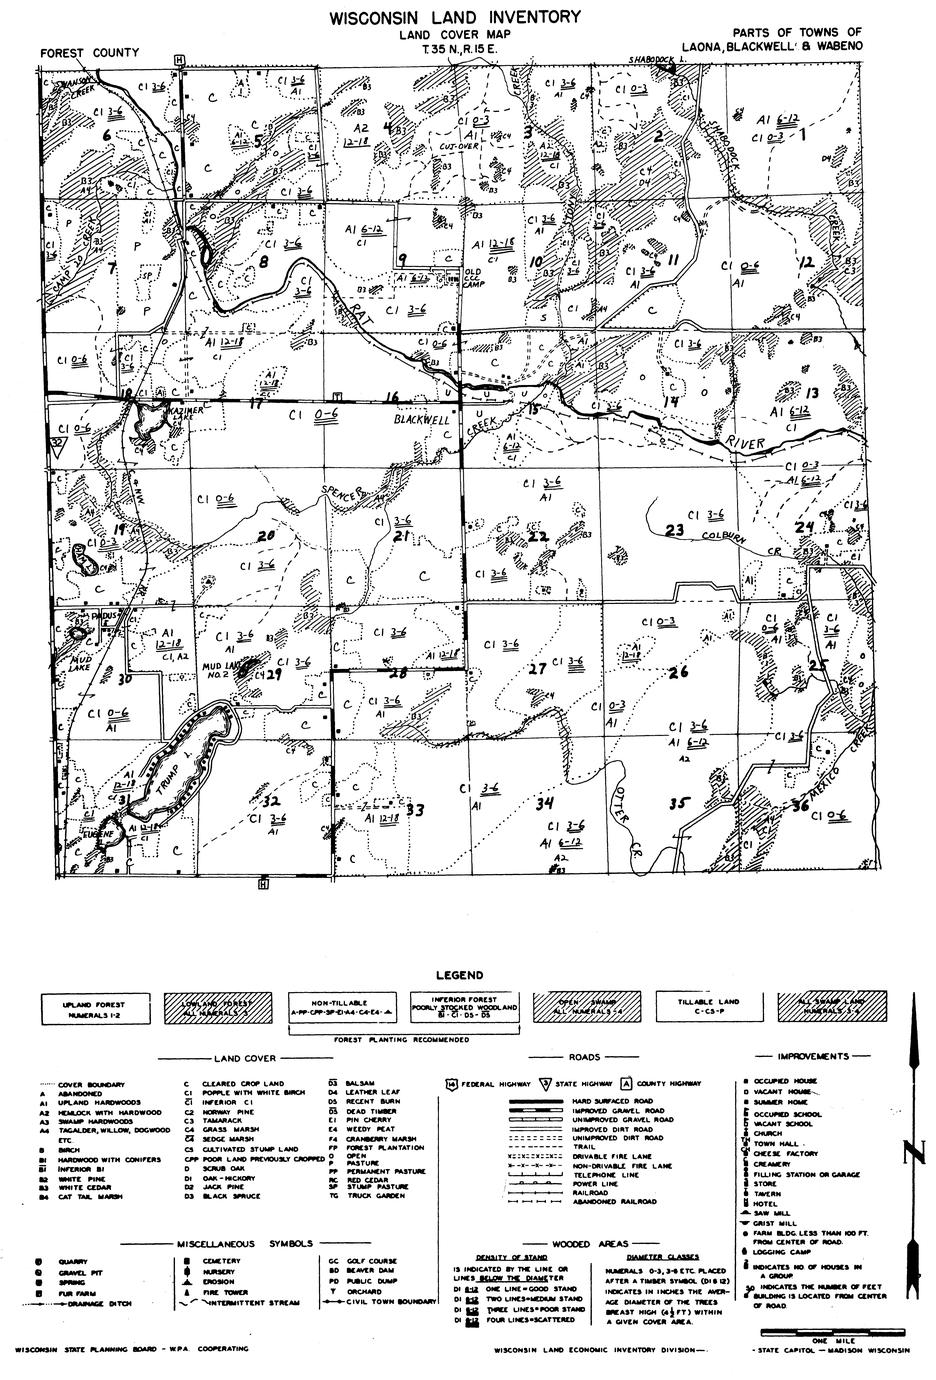 Parts of towns of Laona, Blackwell and Wabeno